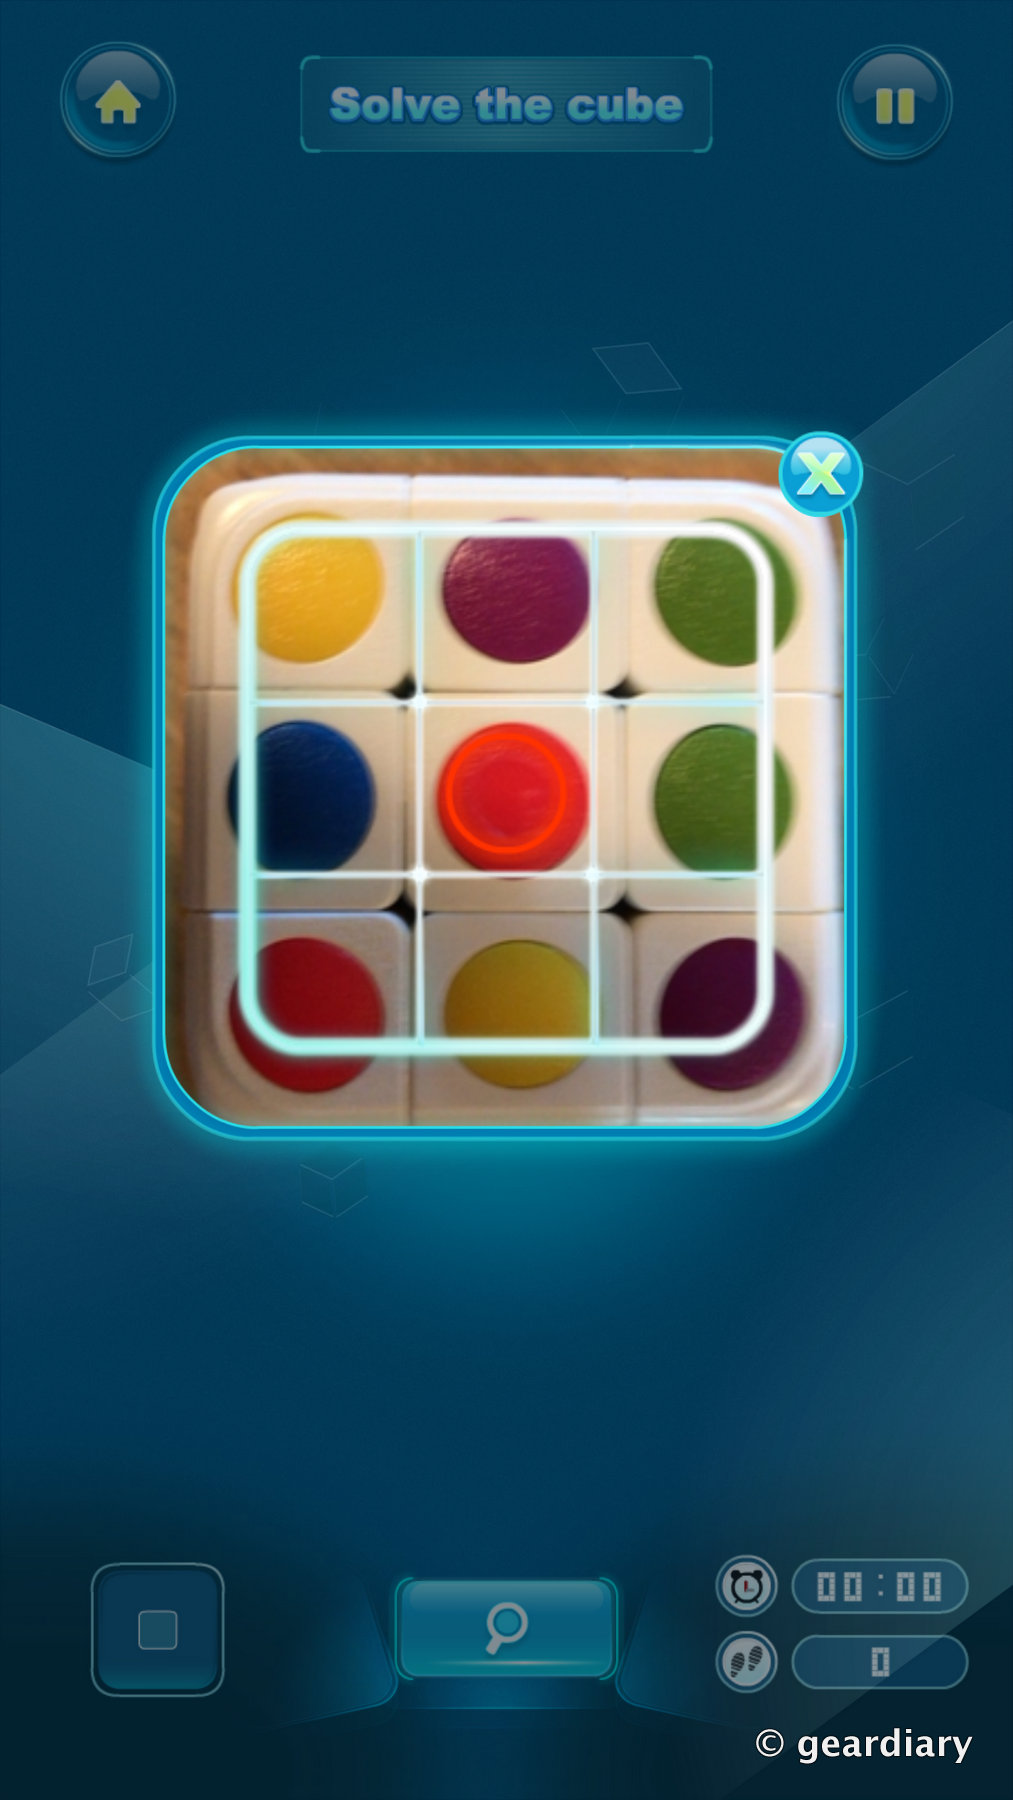 GearDiary Cube-tastic!: Challenge Your Mind and Enhance Your Memory with This 3-D Puzzle Cube